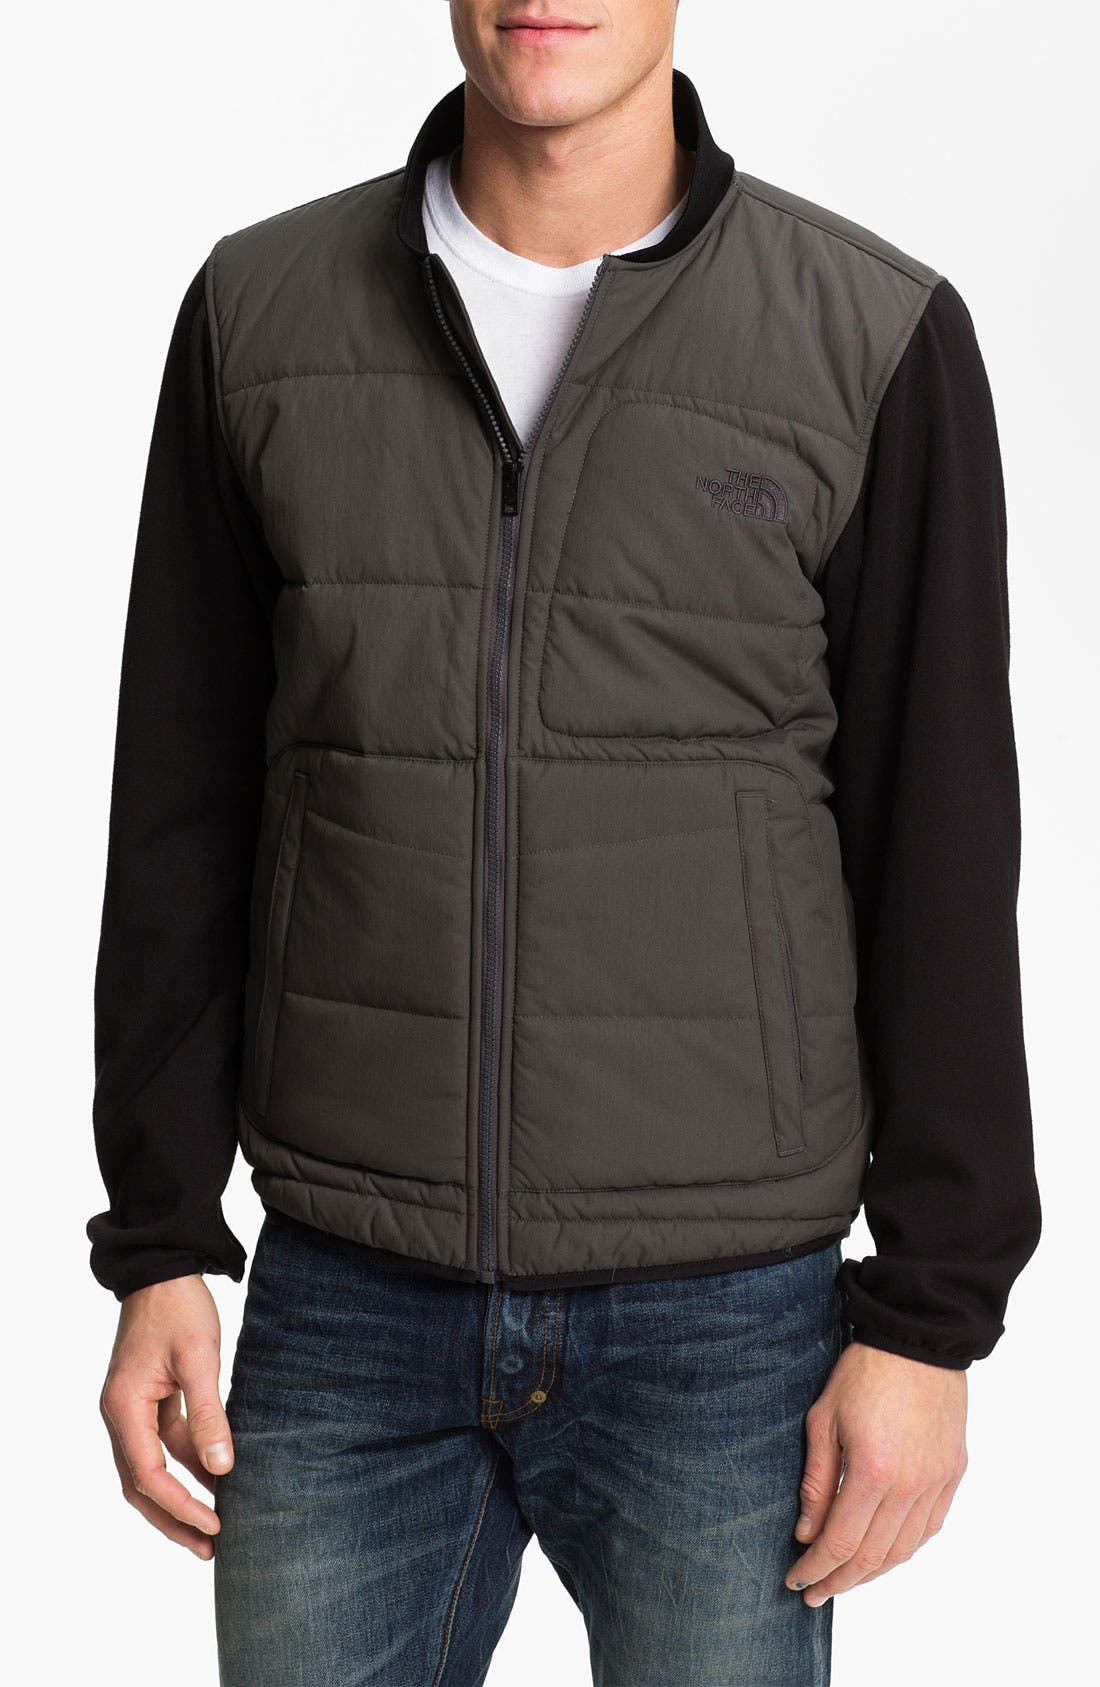 Alternate Image 1 Selected - The North Face 'Allerton' Jacket